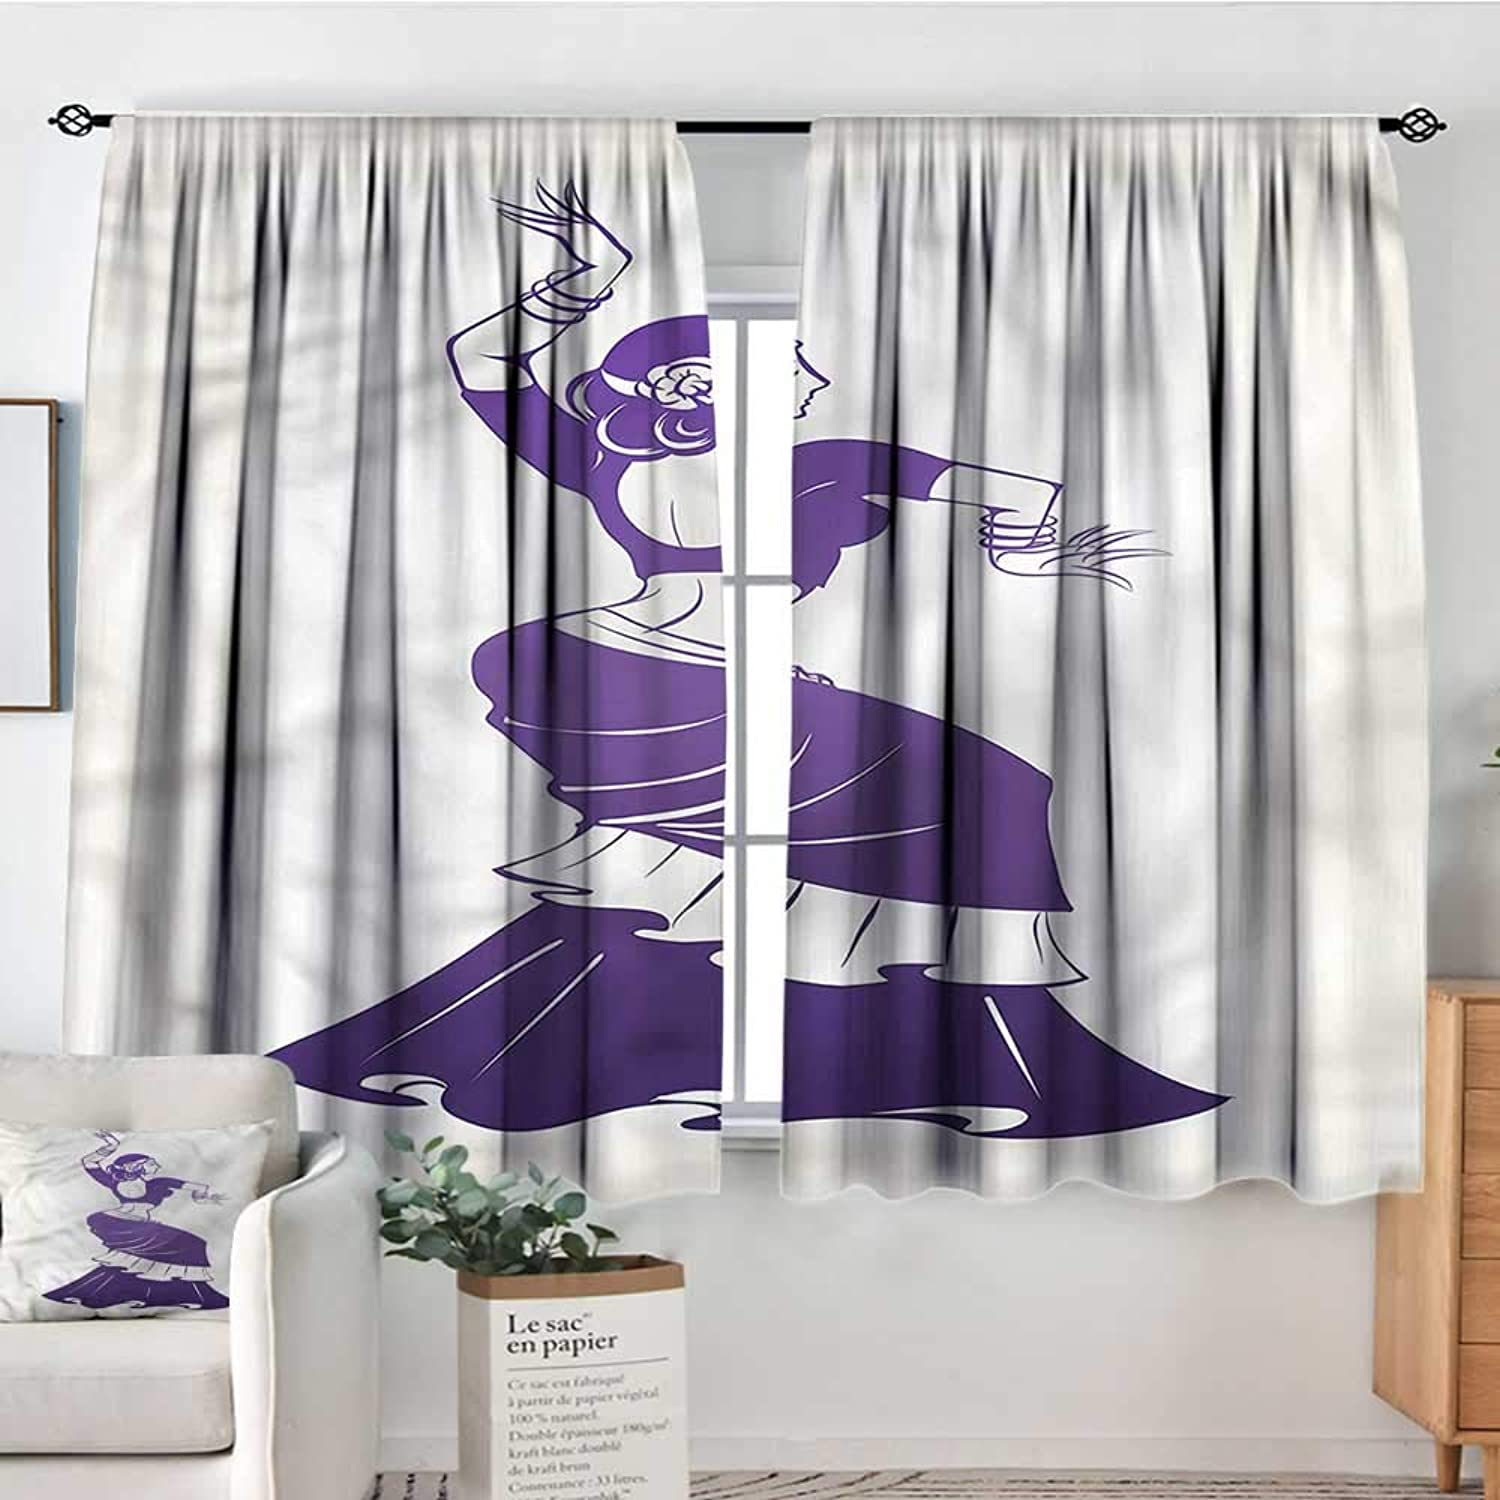 Gypsy,Room Darkening Curtains Roman Cultural Folklore Motif 52 x63  Nursery and Kids Bedroom Curtains